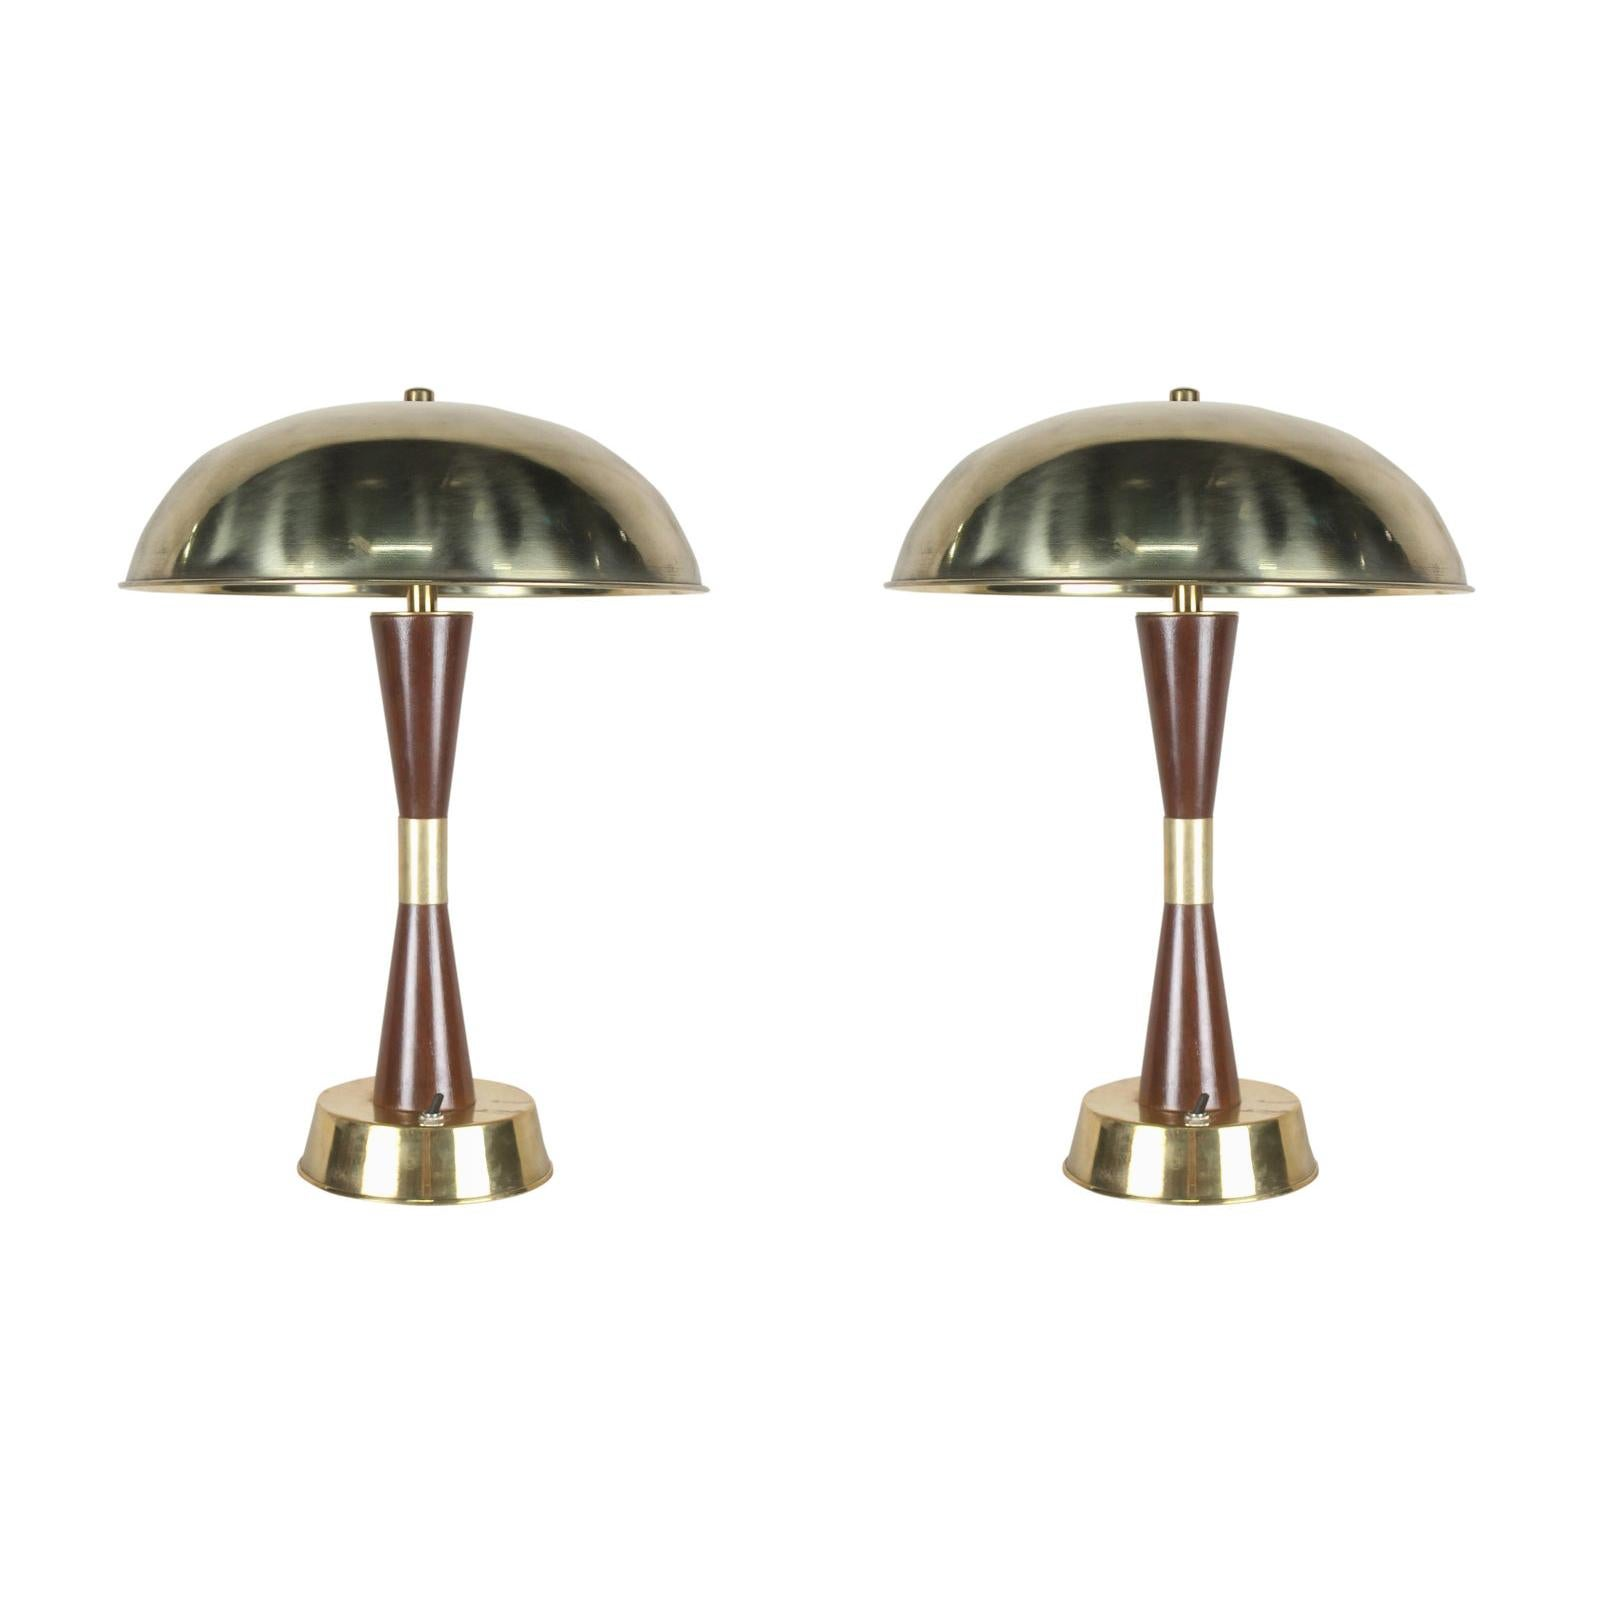 Pair of Nautical Brass and Teak Table Lamps from Ship's Stateroom